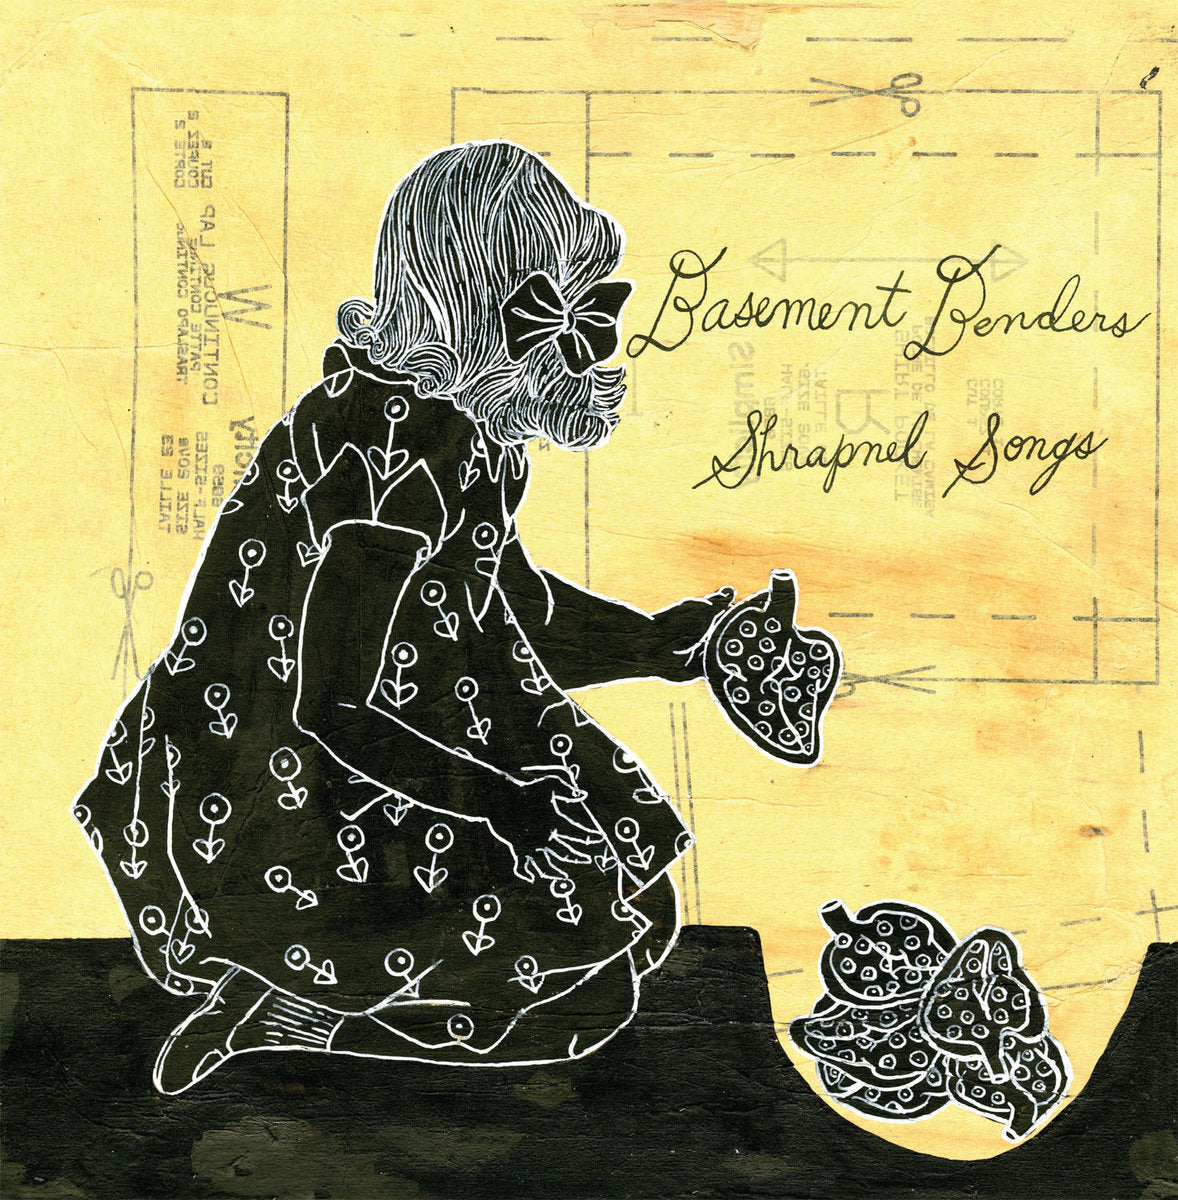 Basement Benders - Shrapnel Songs - New LP